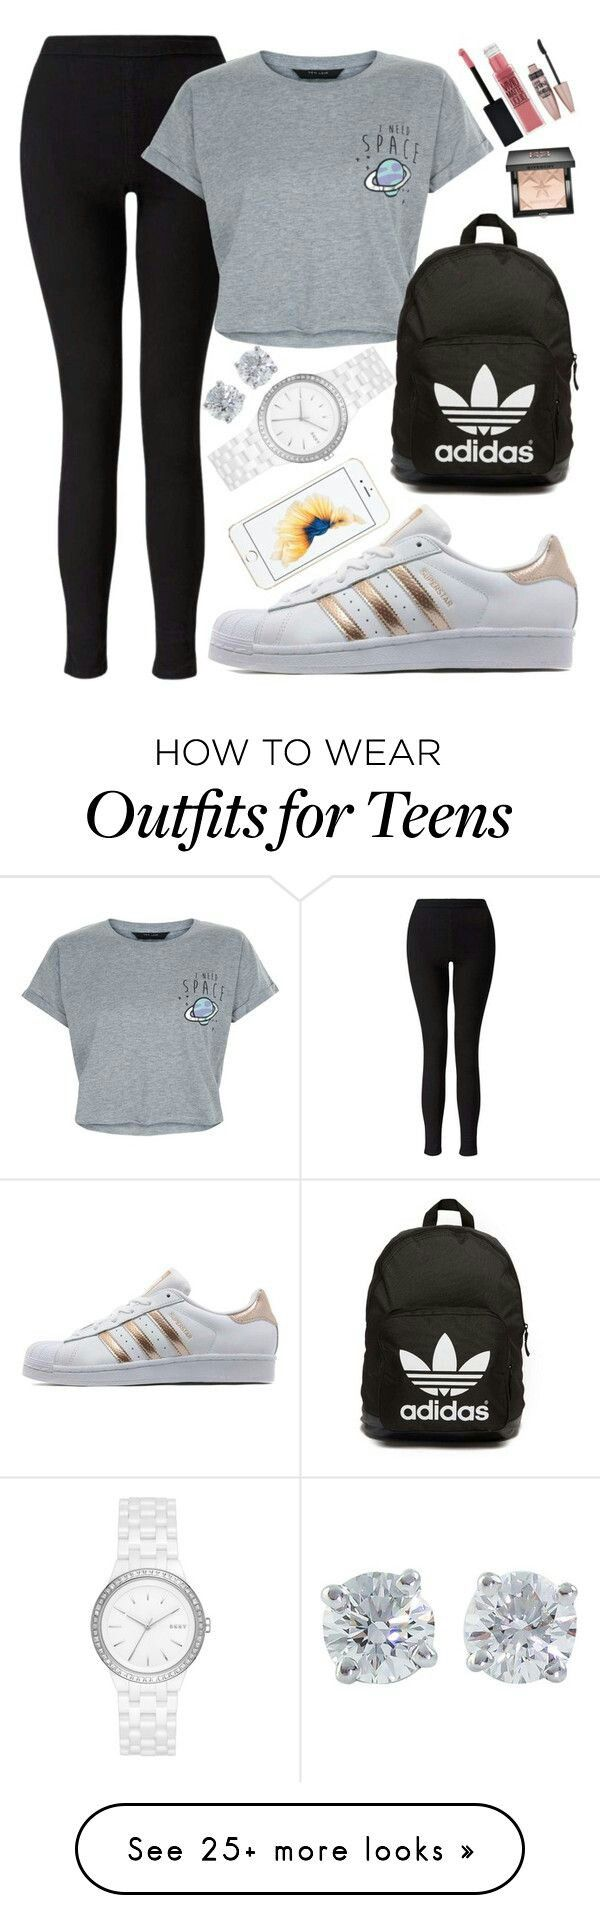 How to Wear Outfits for Teens